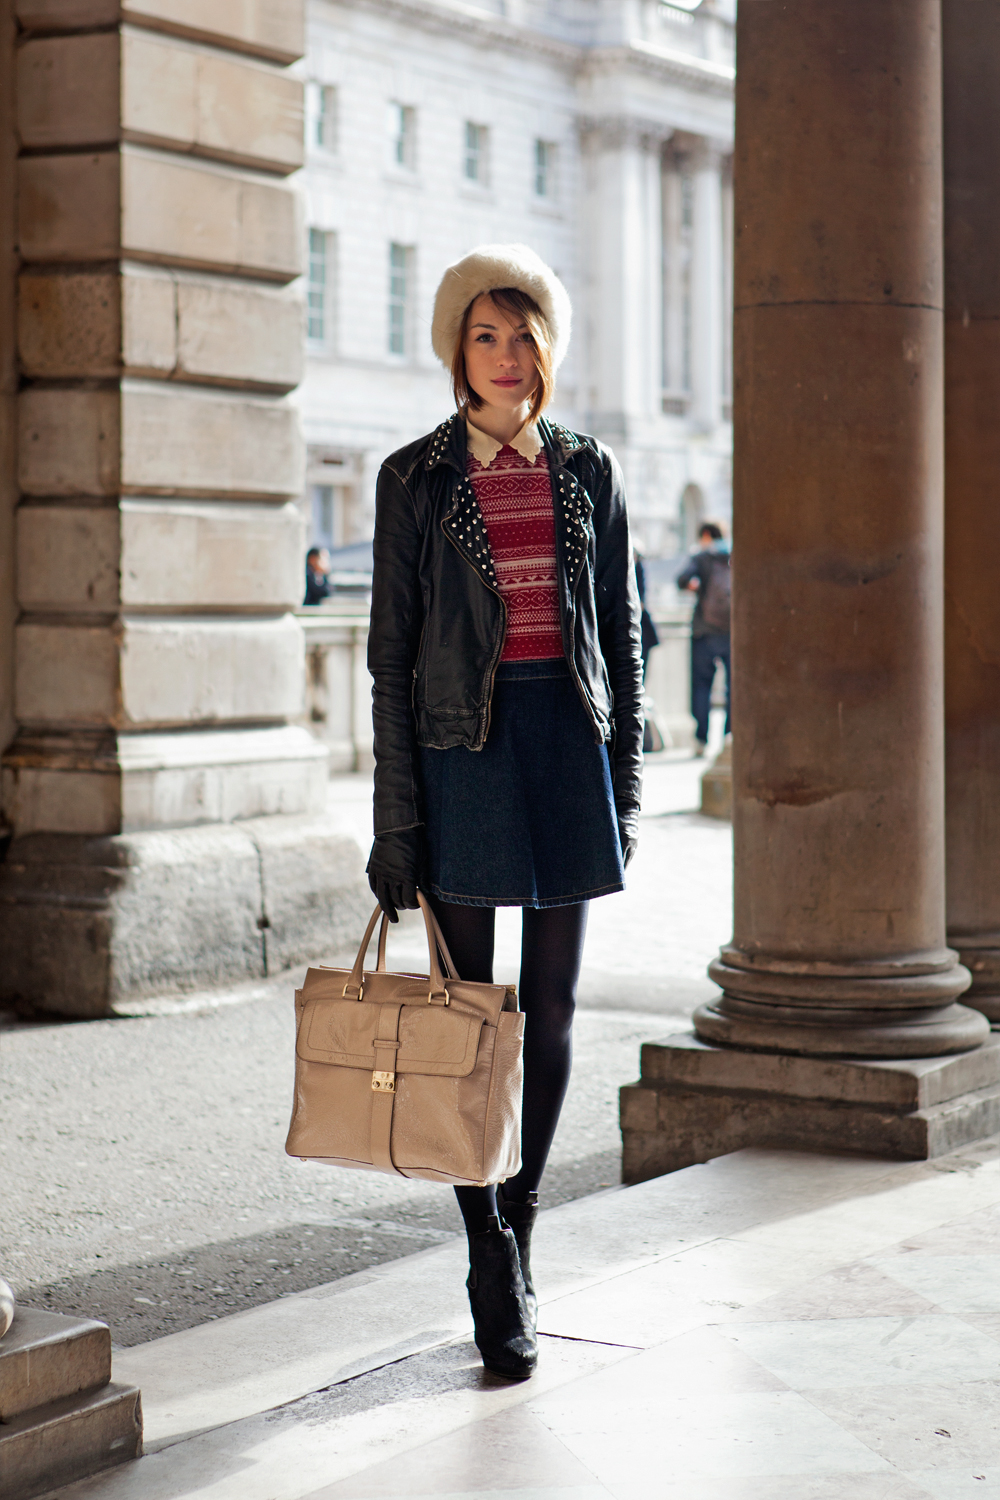 London Street Style With Camille Charrière At London: How Does London Street Style Look? Edgy. Sophisticated